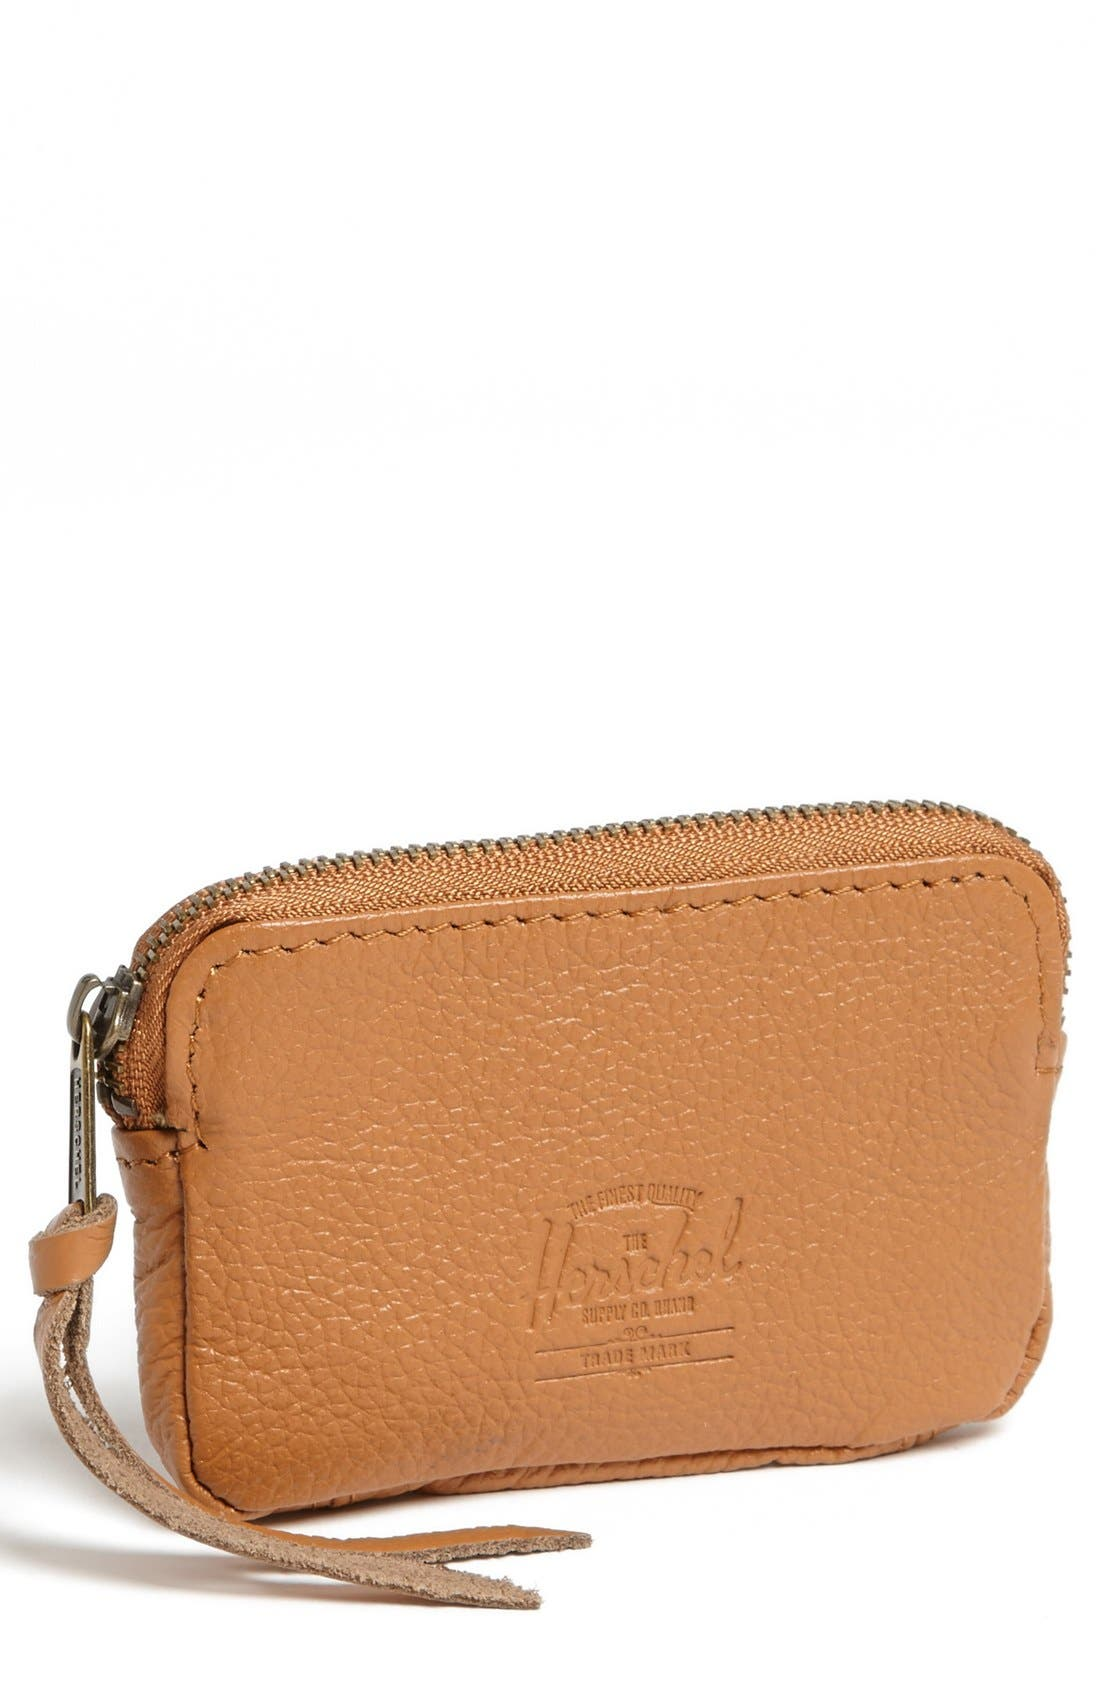 Alternate Image 1 Selected - Herschel Supply Co. 'Oxford' Leather Pouch Wallet